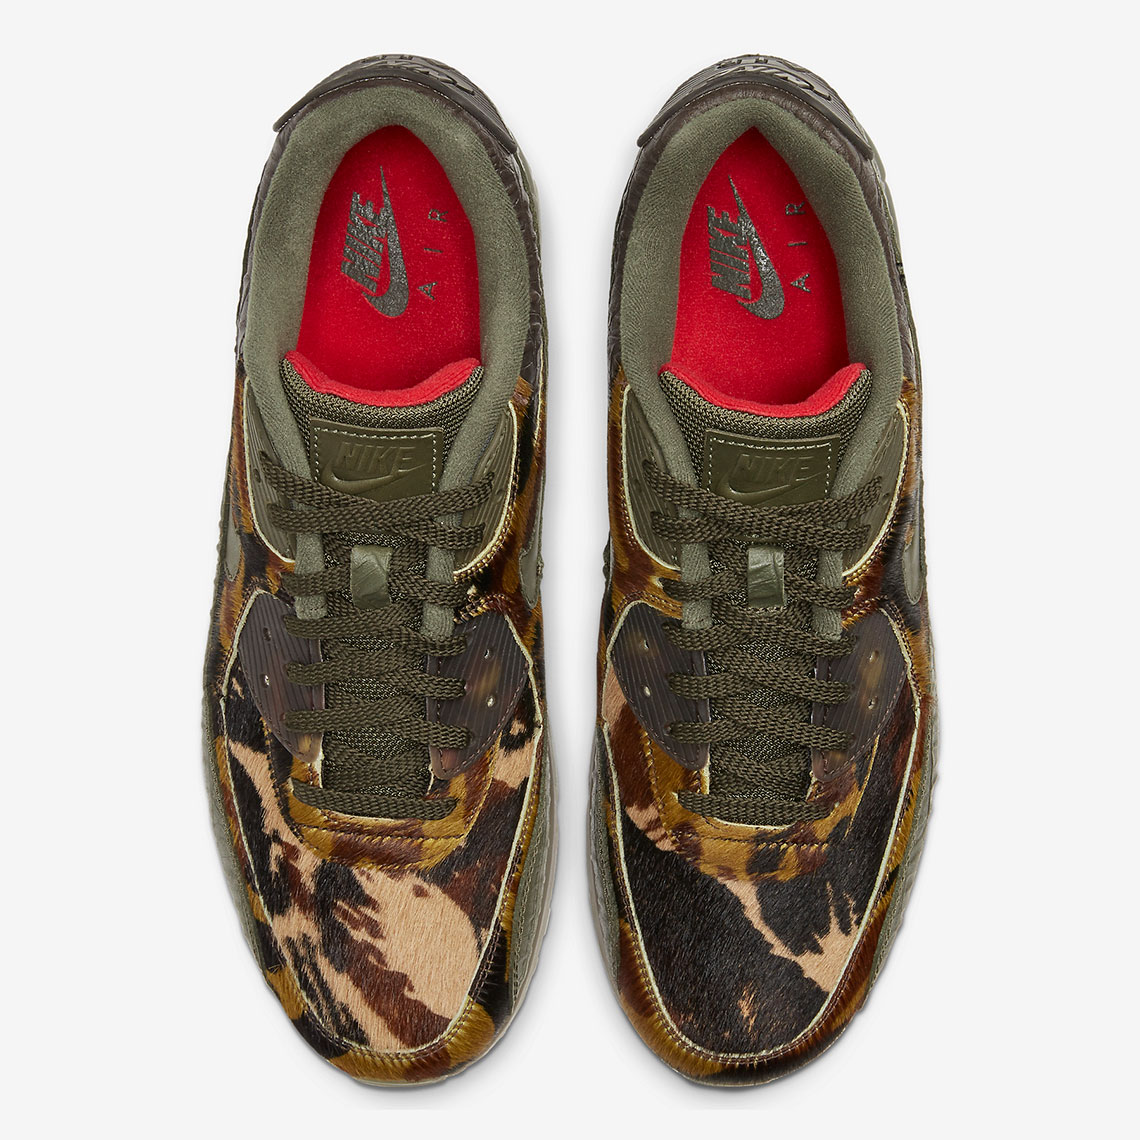 Air Max 90 Camo Croc Top of shoe